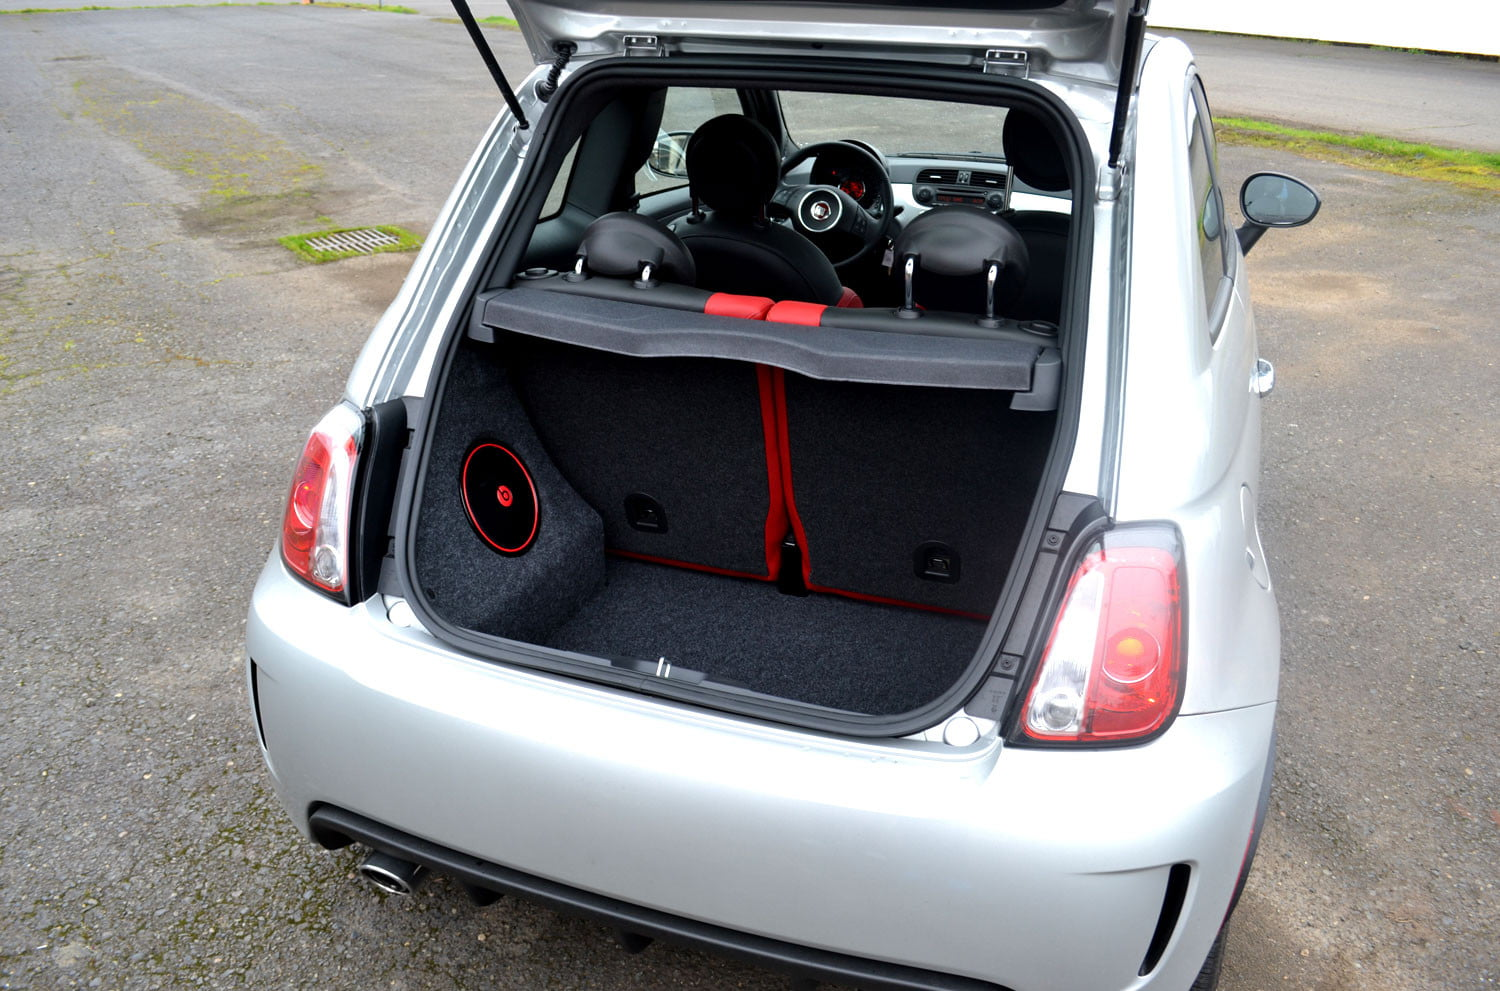 https://icdn3.digitaltrends.com/image/2013-fiat-500-trunk-1500x991.jpg?ver=1